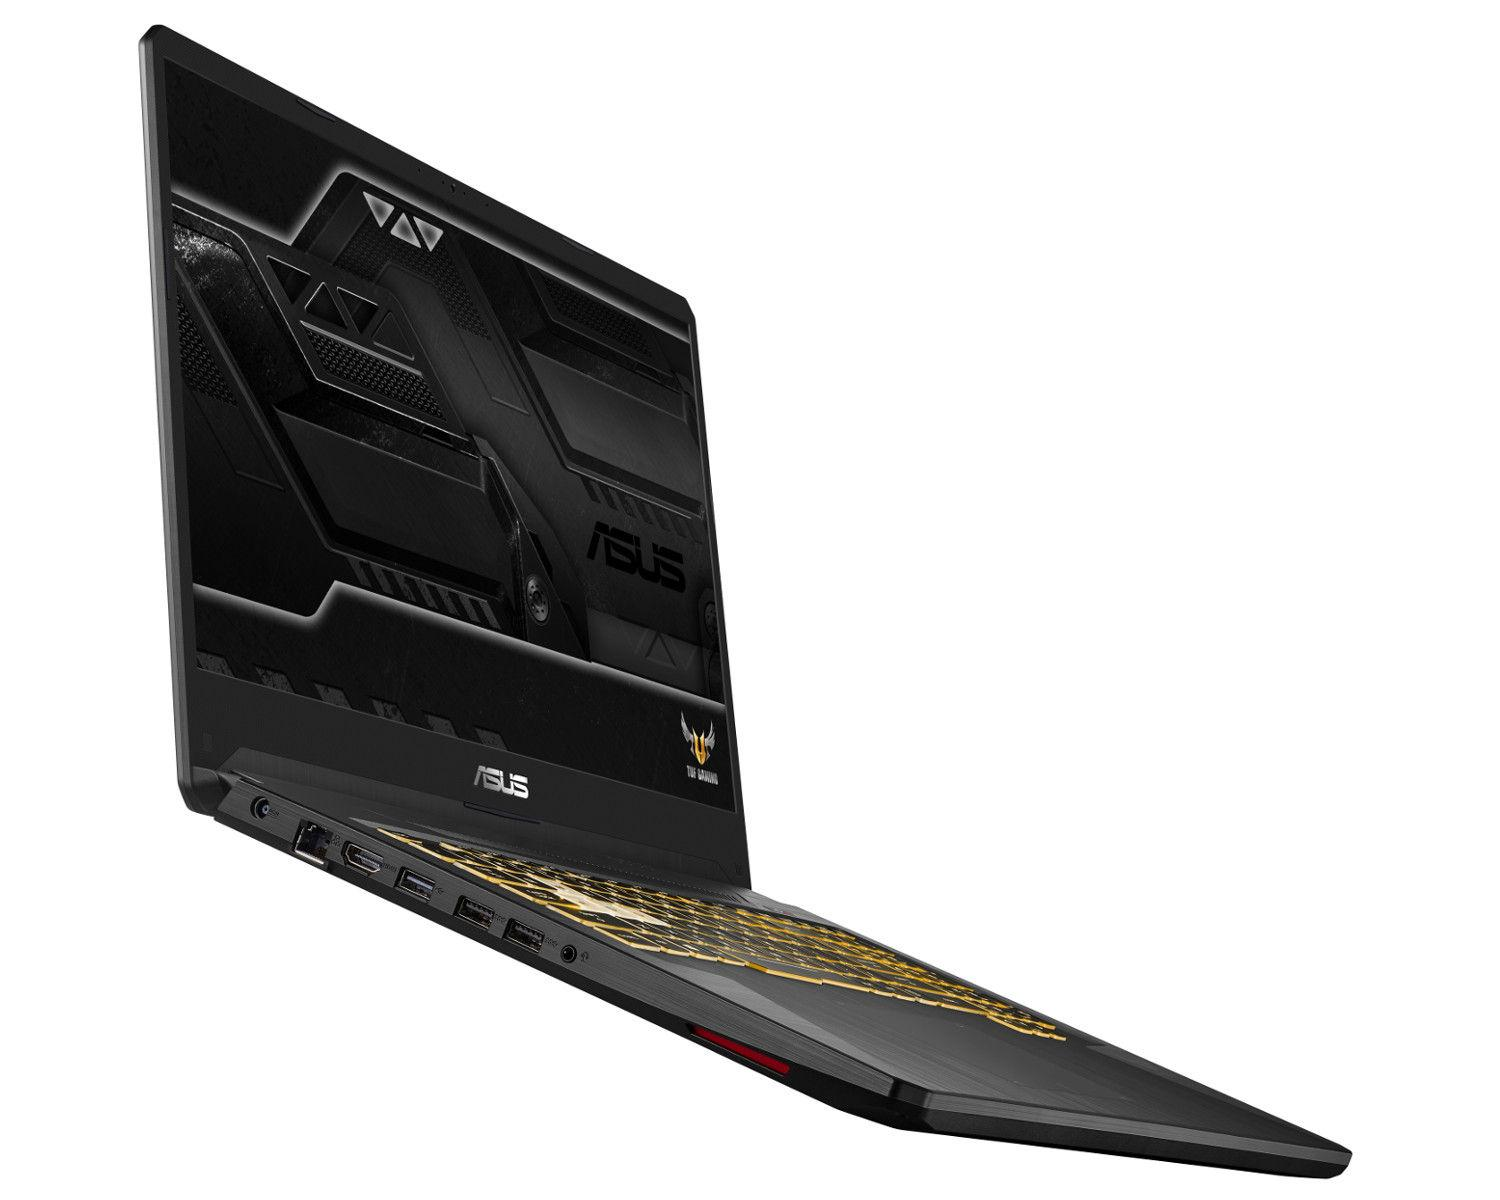 Ordinateur portable Asus TUF 765GM-EV149T Noir/Gold - GTX 1060 144 Hz - photo 4